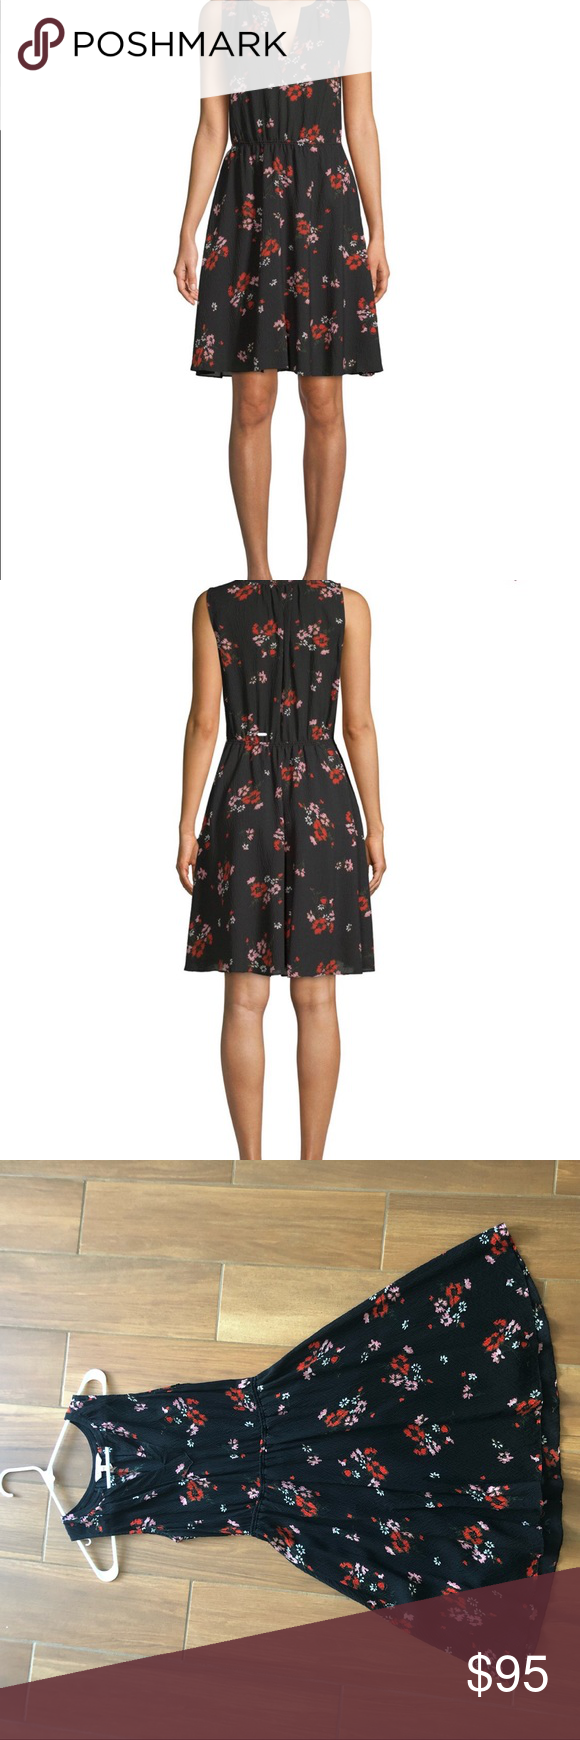 25+ Blossom fit and flare dress kate spade ideas in 2021